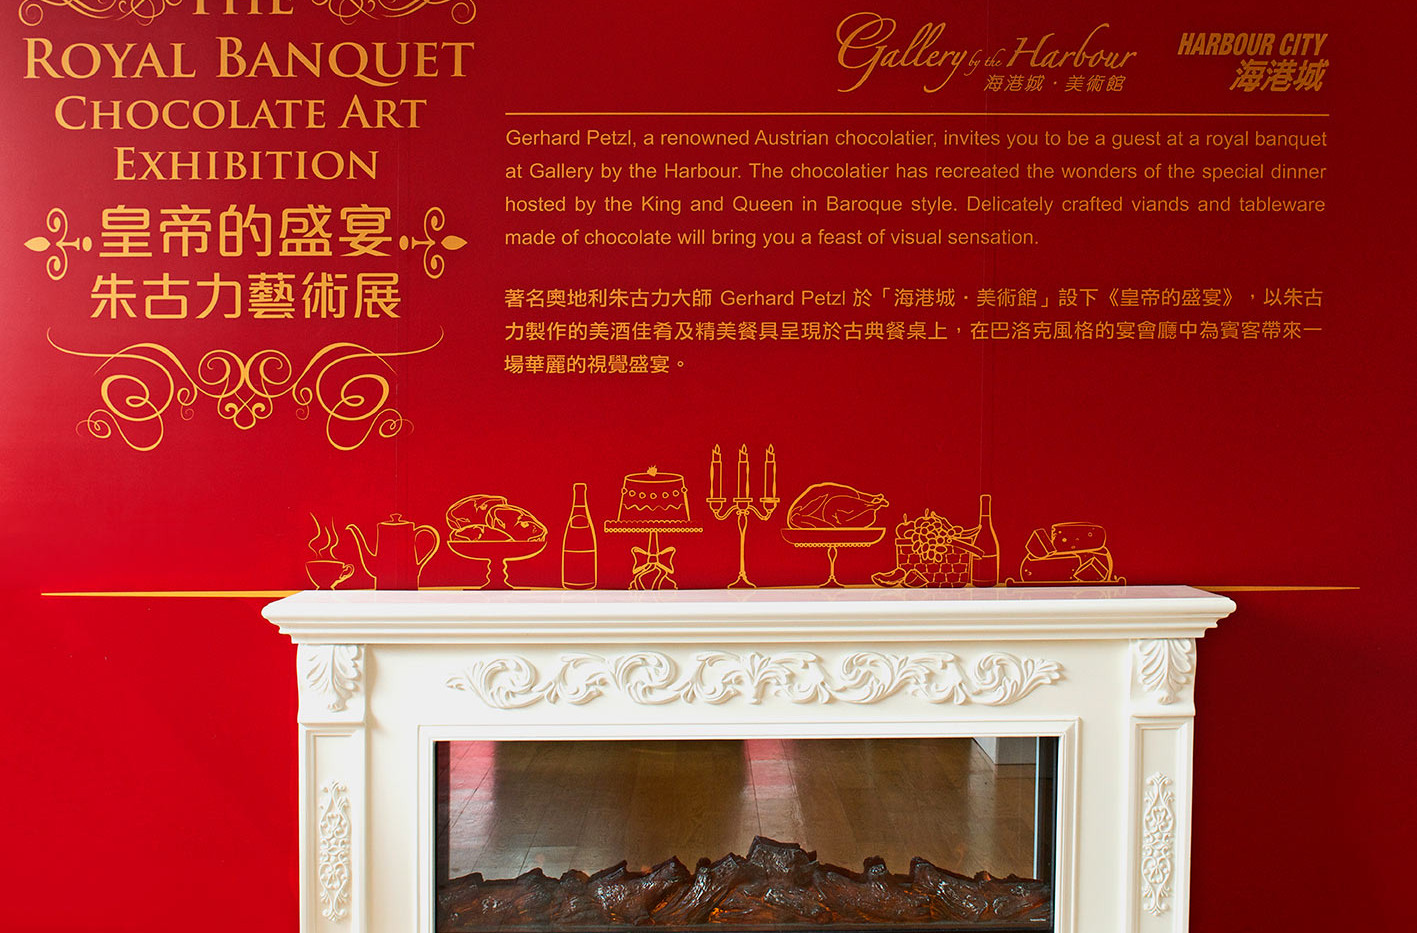 Royal banquet info wall